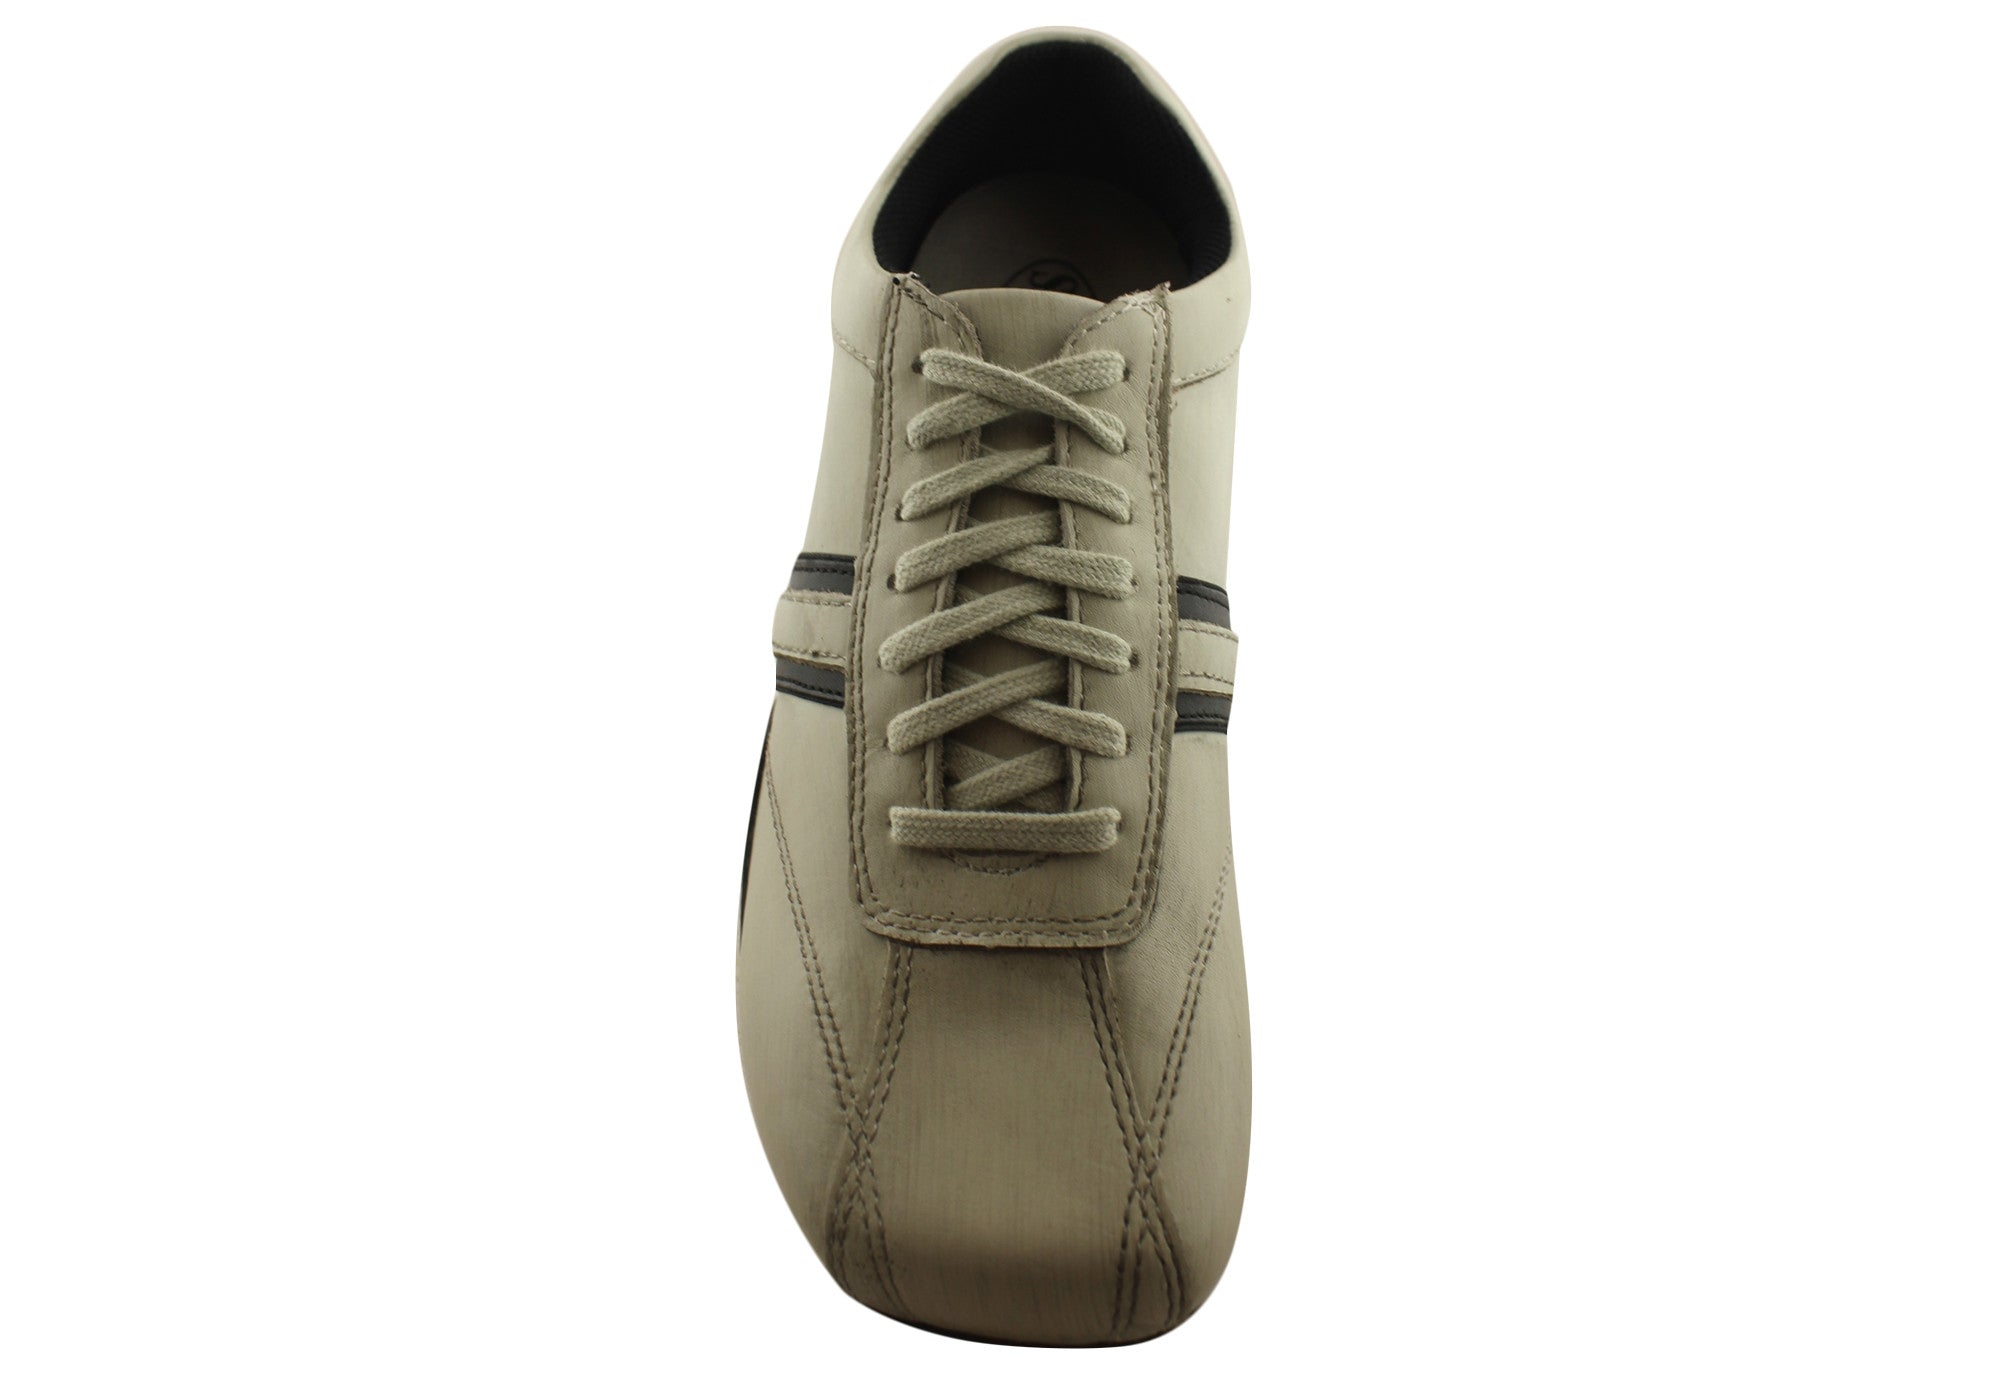 Slatters Valiant Mens Leather Lace Up Casual Shoes